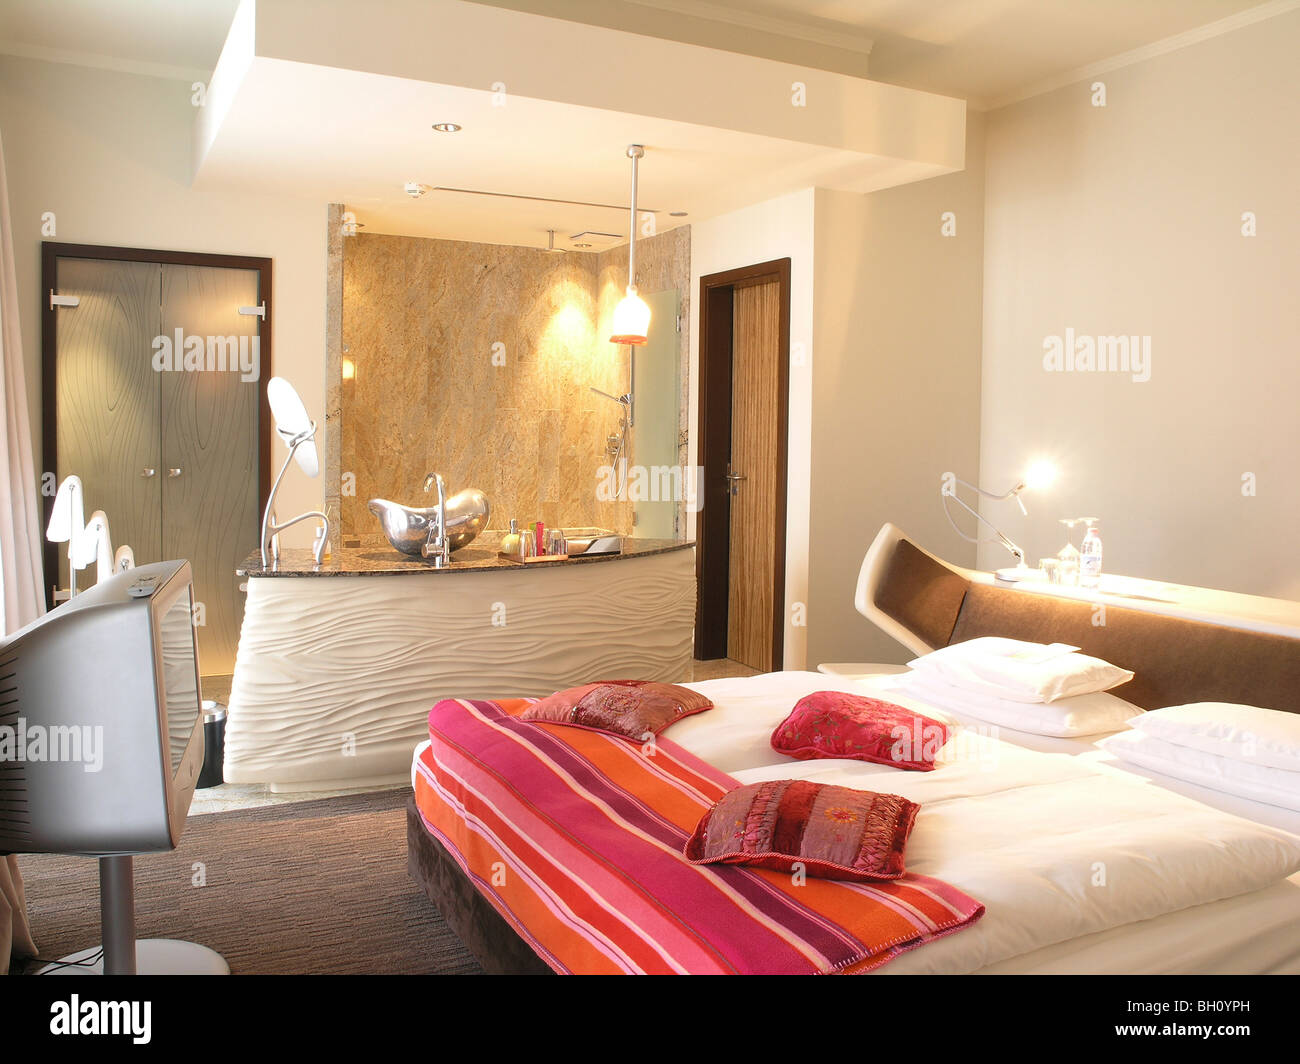 hamburg east stockfotos hamburg east bilder alamy. Black Bedroom Furniture Sets. Home Design Ideas